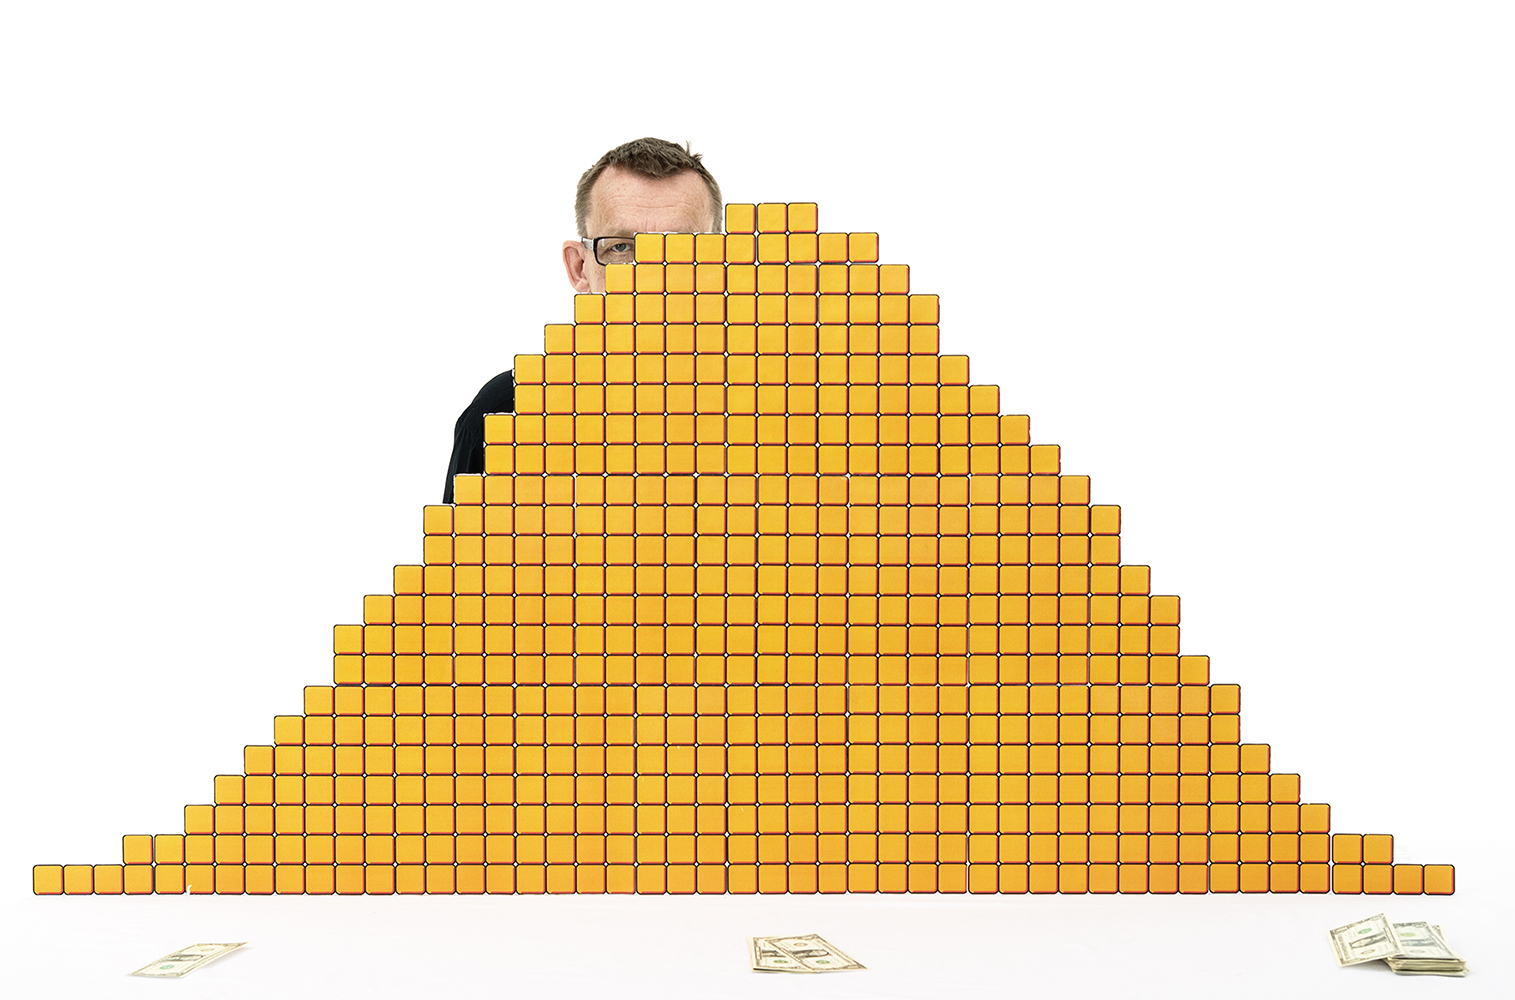 Portrait of global health expert and statistician Hans Rosling, standing behind his 'Dromedary World' income graph, made of carved cubes in styrofoam.